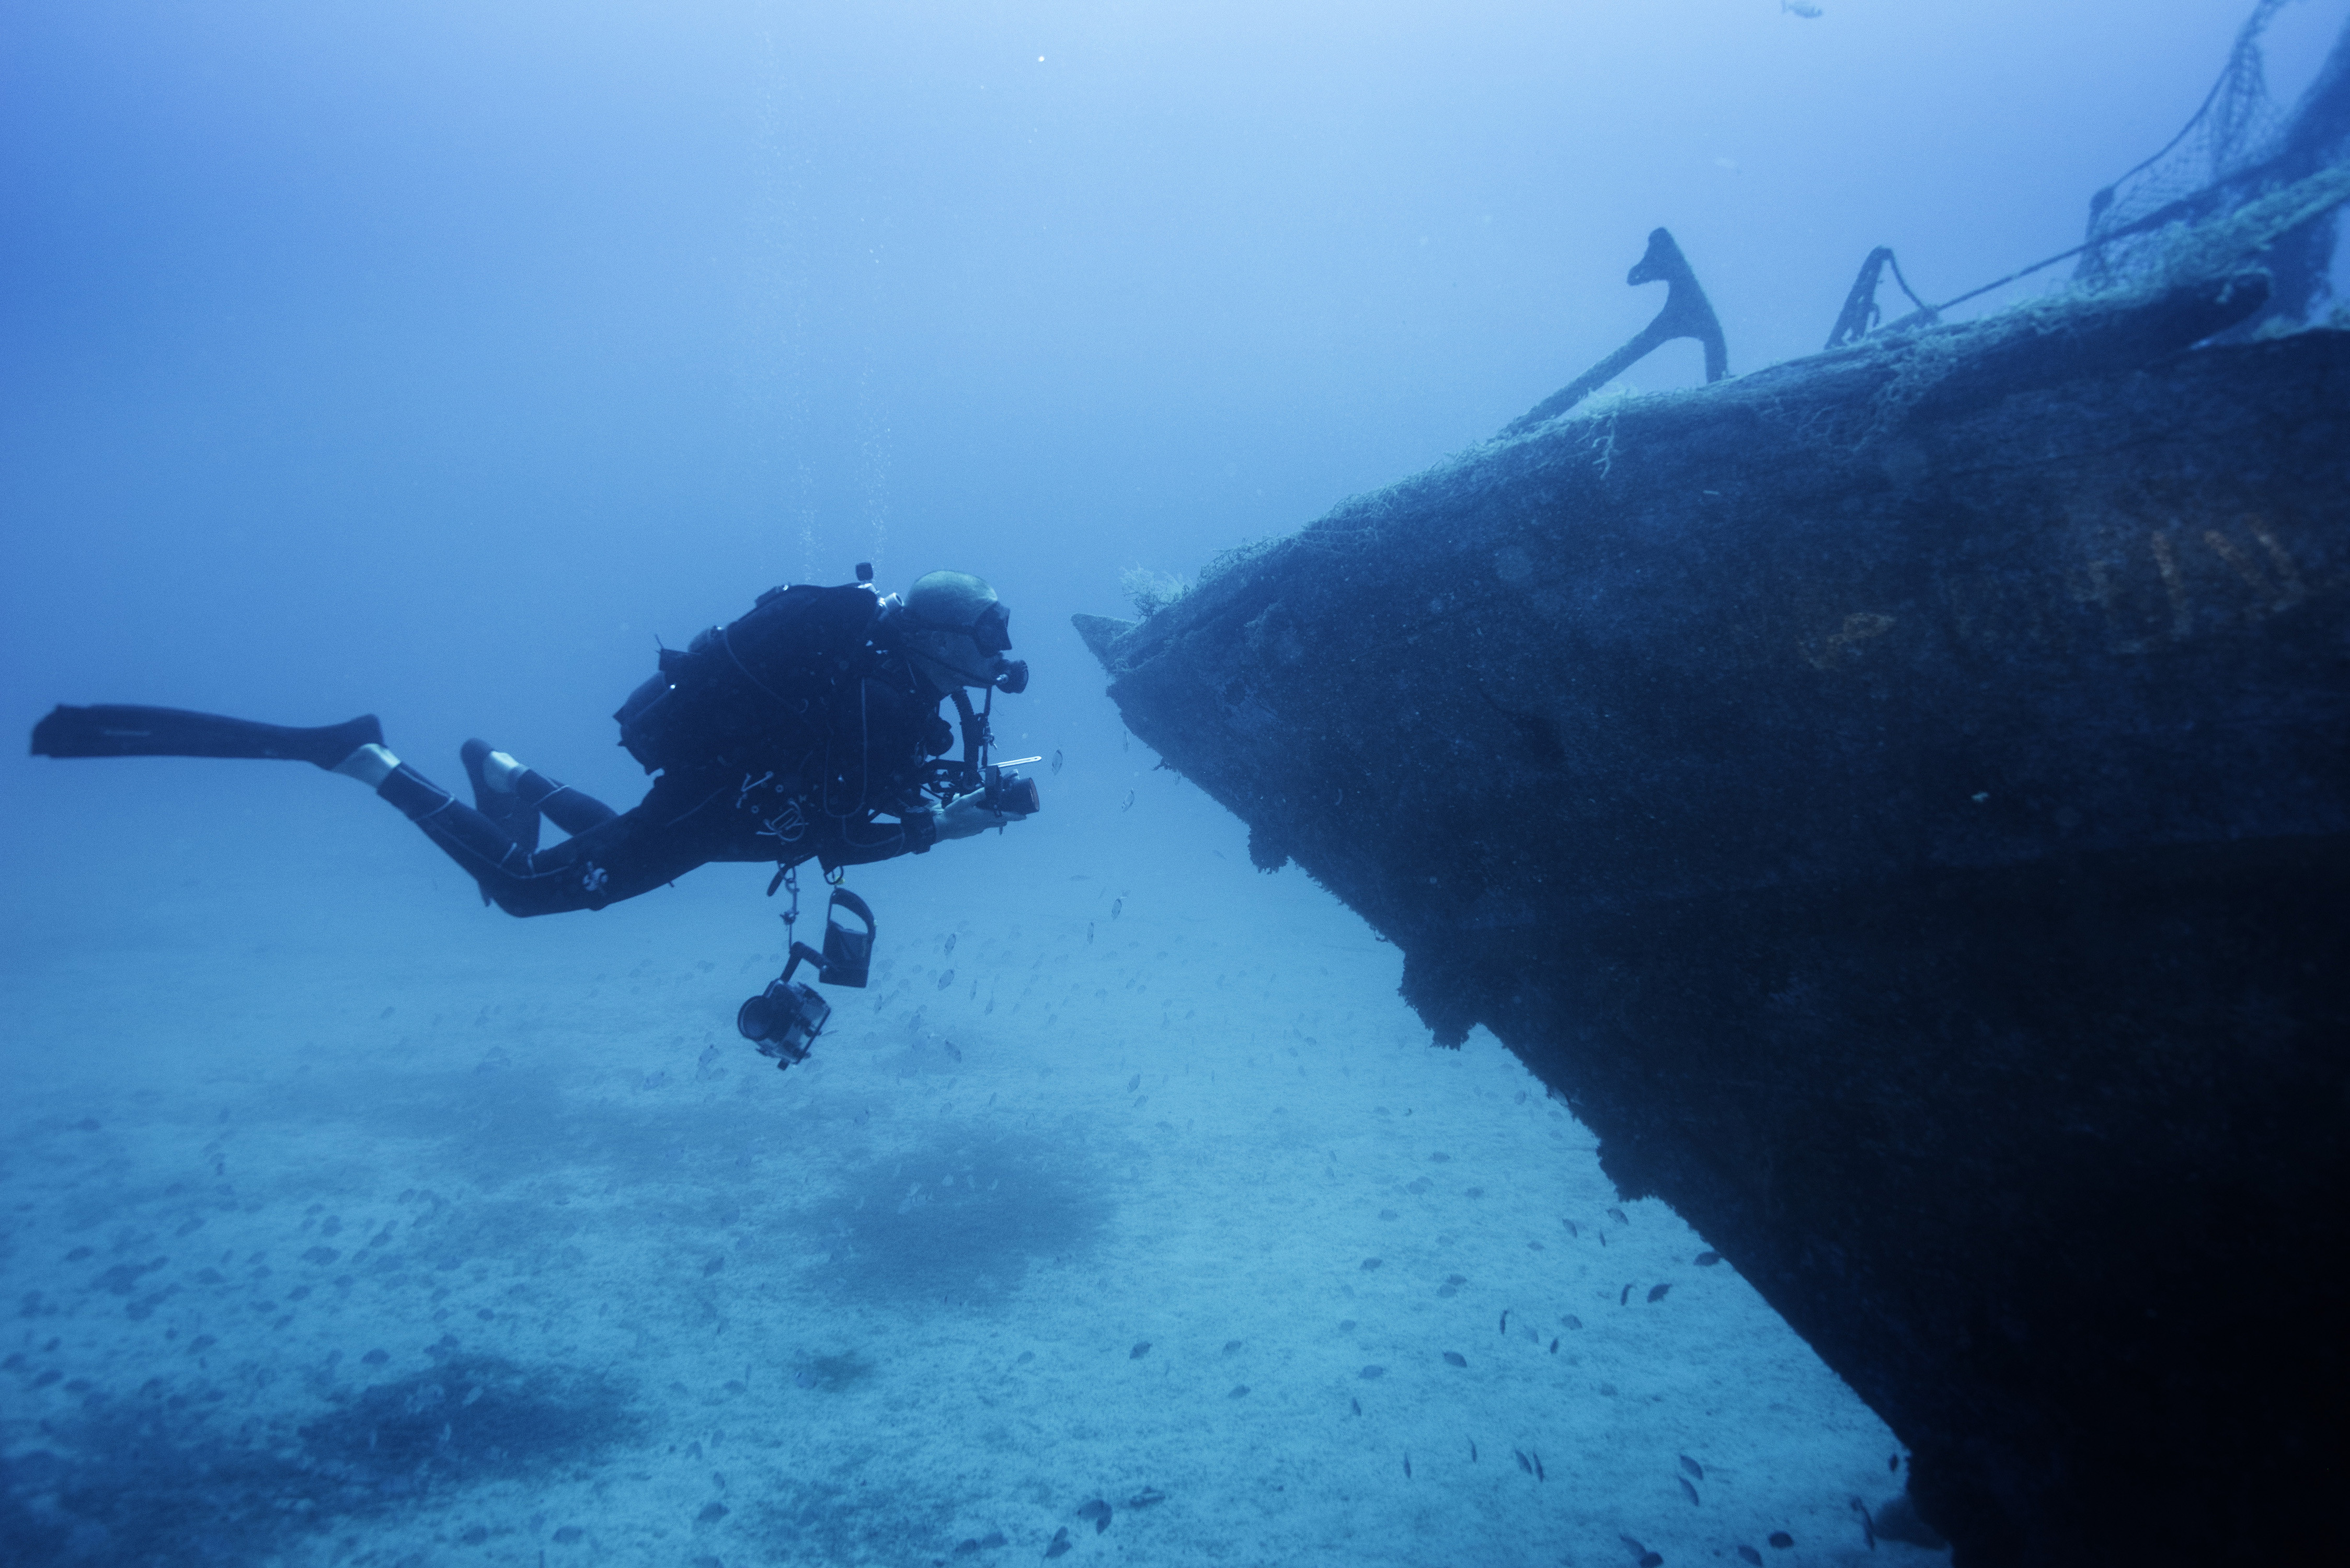 A scuba-diver inspects the shipwreck of the 66-foot-long fishing boat that sank off the coast of the Italian island of Lampedusa lies at a depth of 164 ft. on the seabed, on Sept. 22, 2014. The tragedy that happened a year ago on Oct. 3, 2013 killed 366 migrants from North Africa.